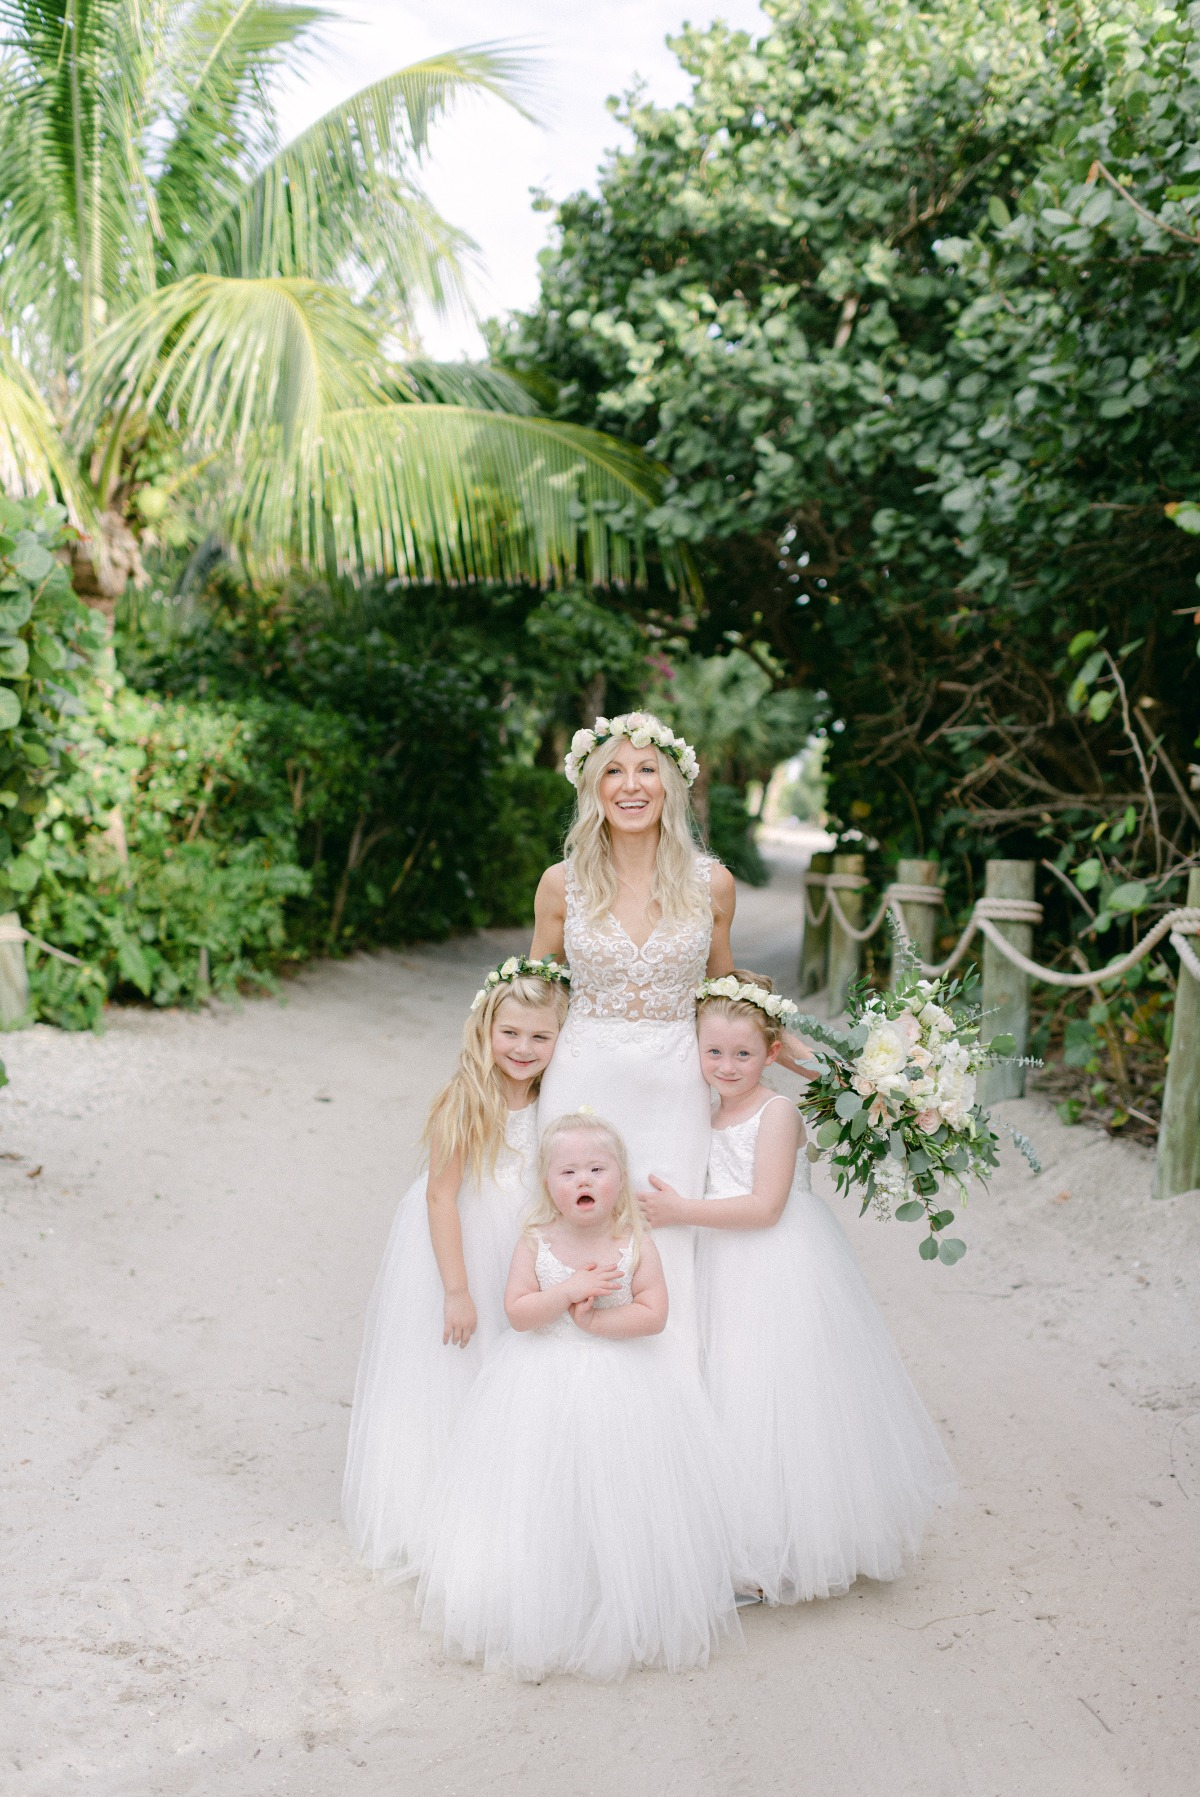 flower girl and bride photo